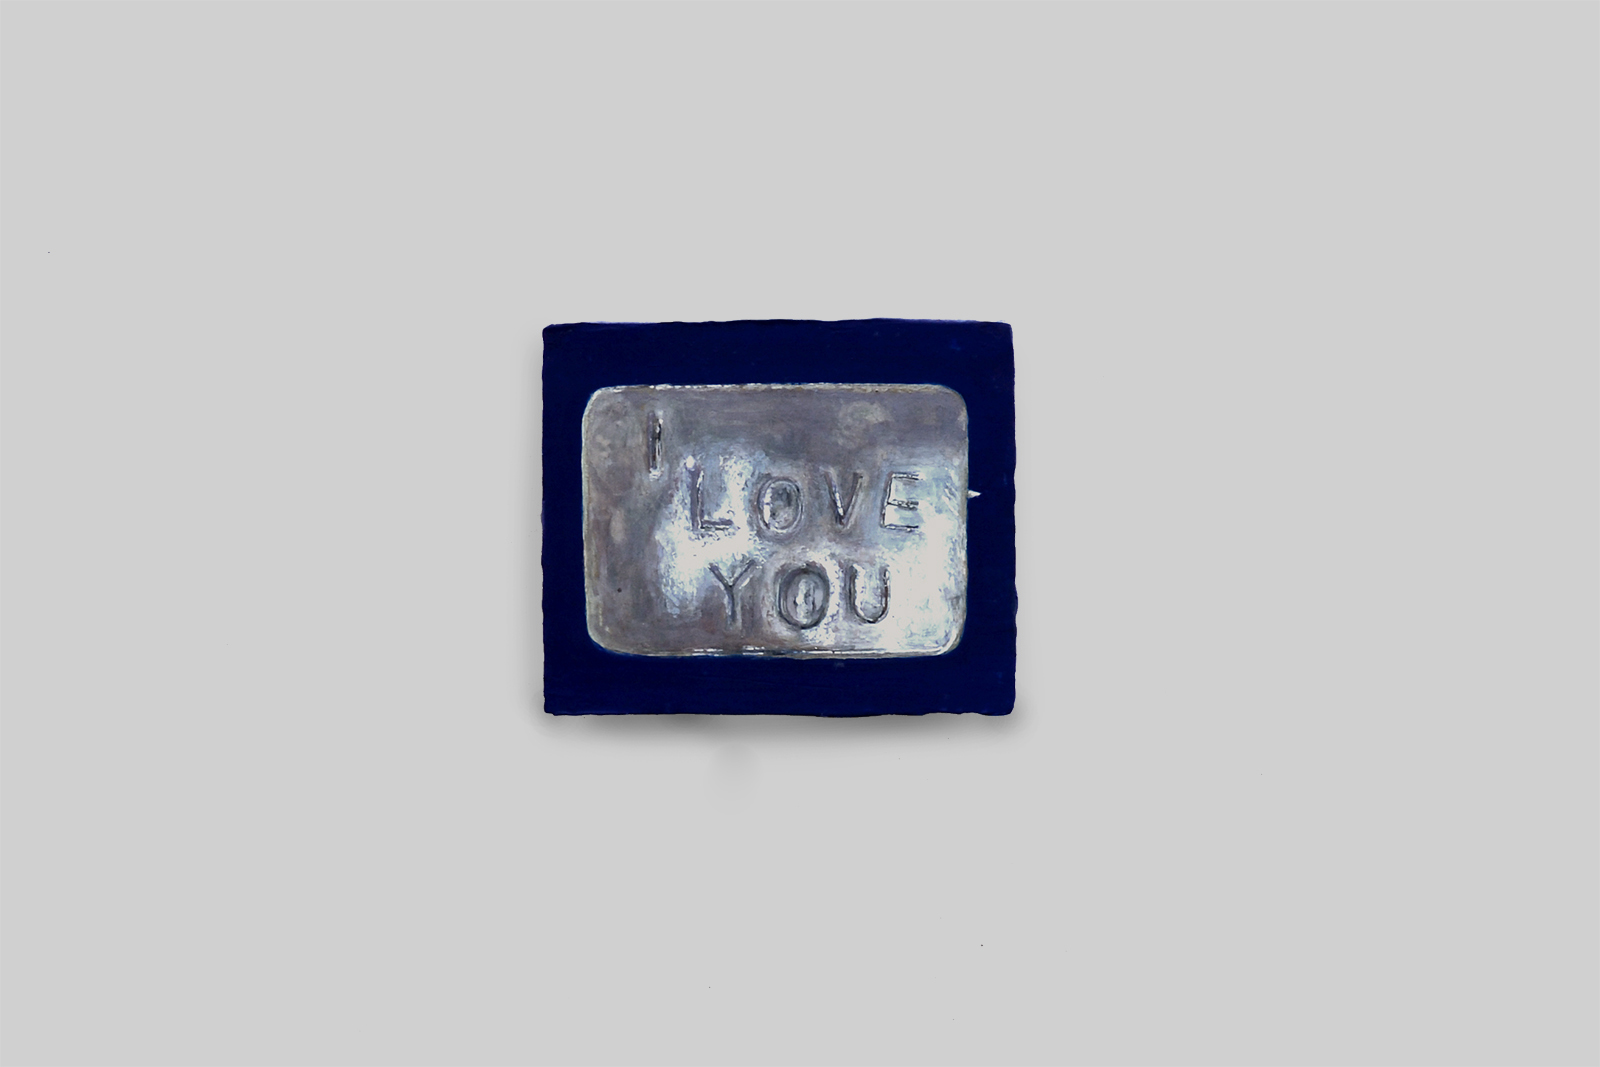 'I love you', 2013, tempera/paneel, 10 x 12 cm